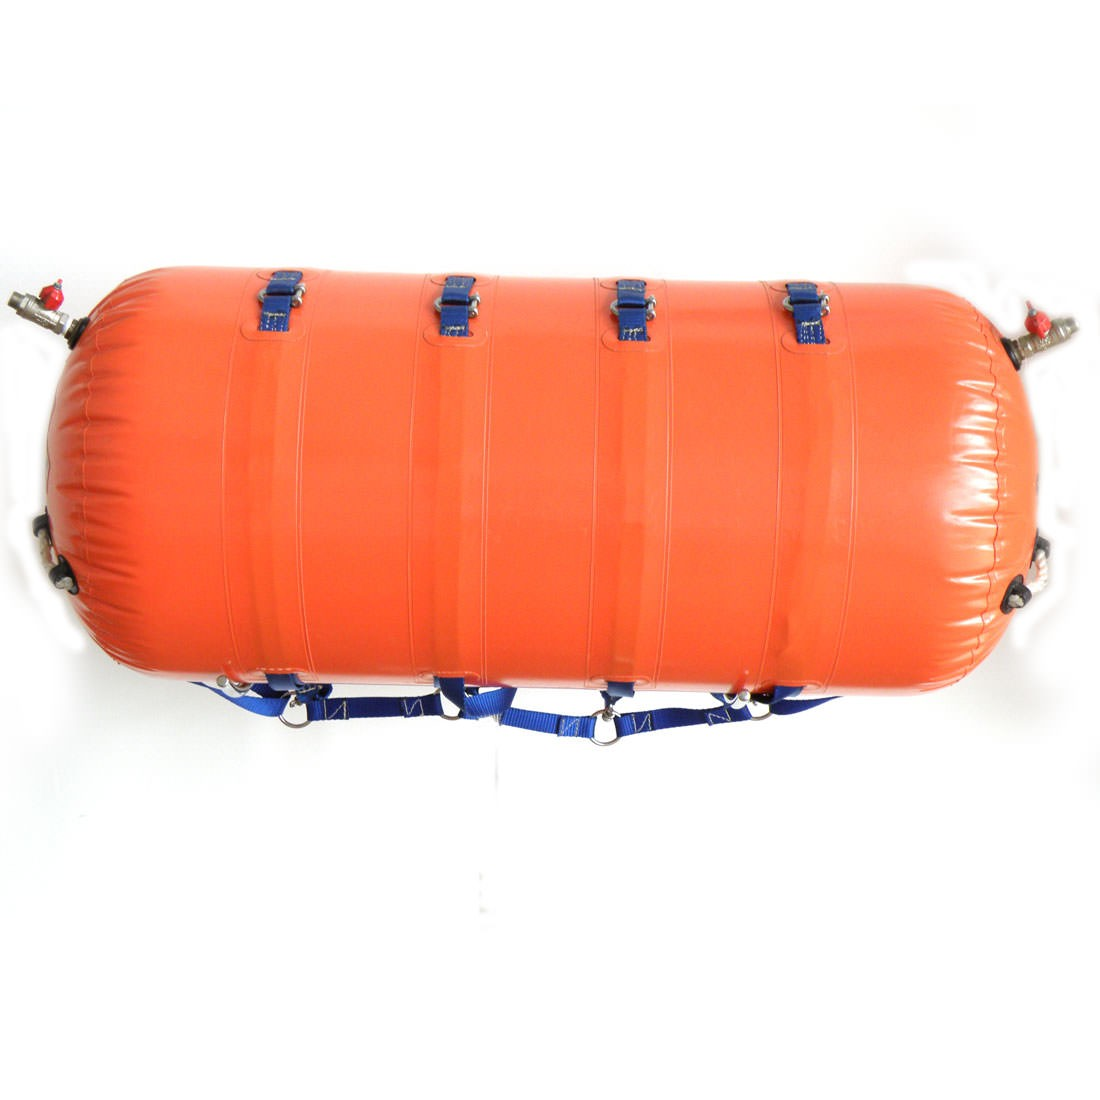 Seaflex 500kg Inflatable Buoyancy Unit